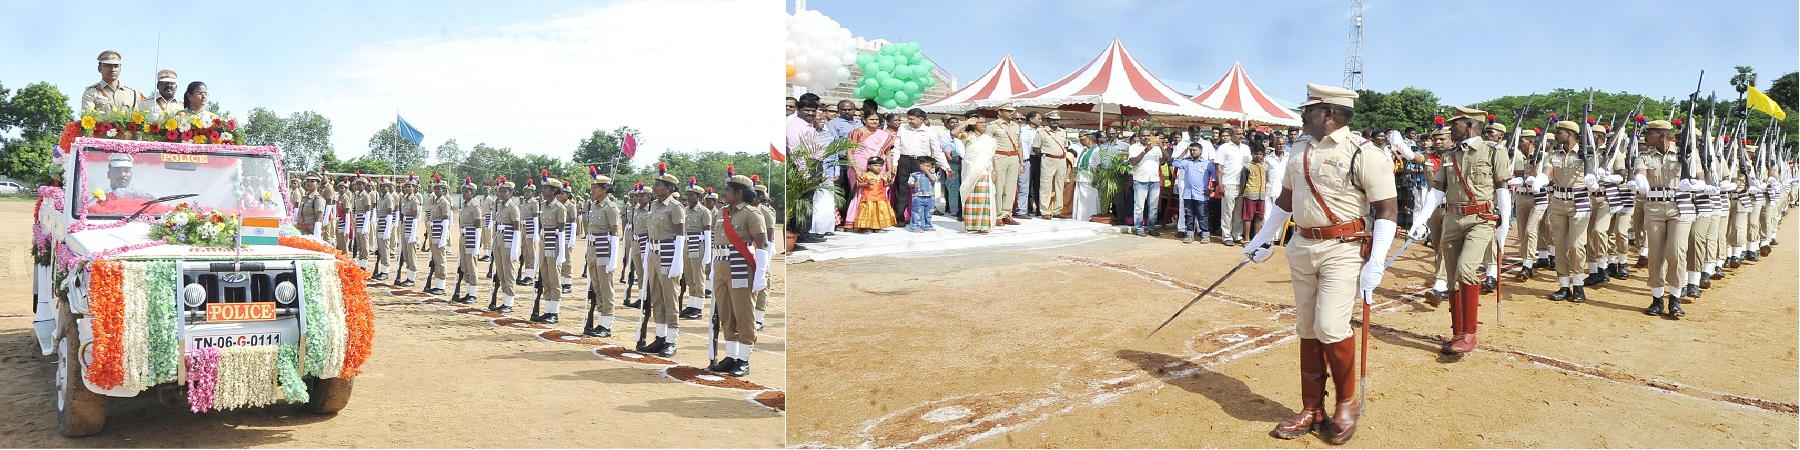 73rd Independence Day Celebration (Contd.)